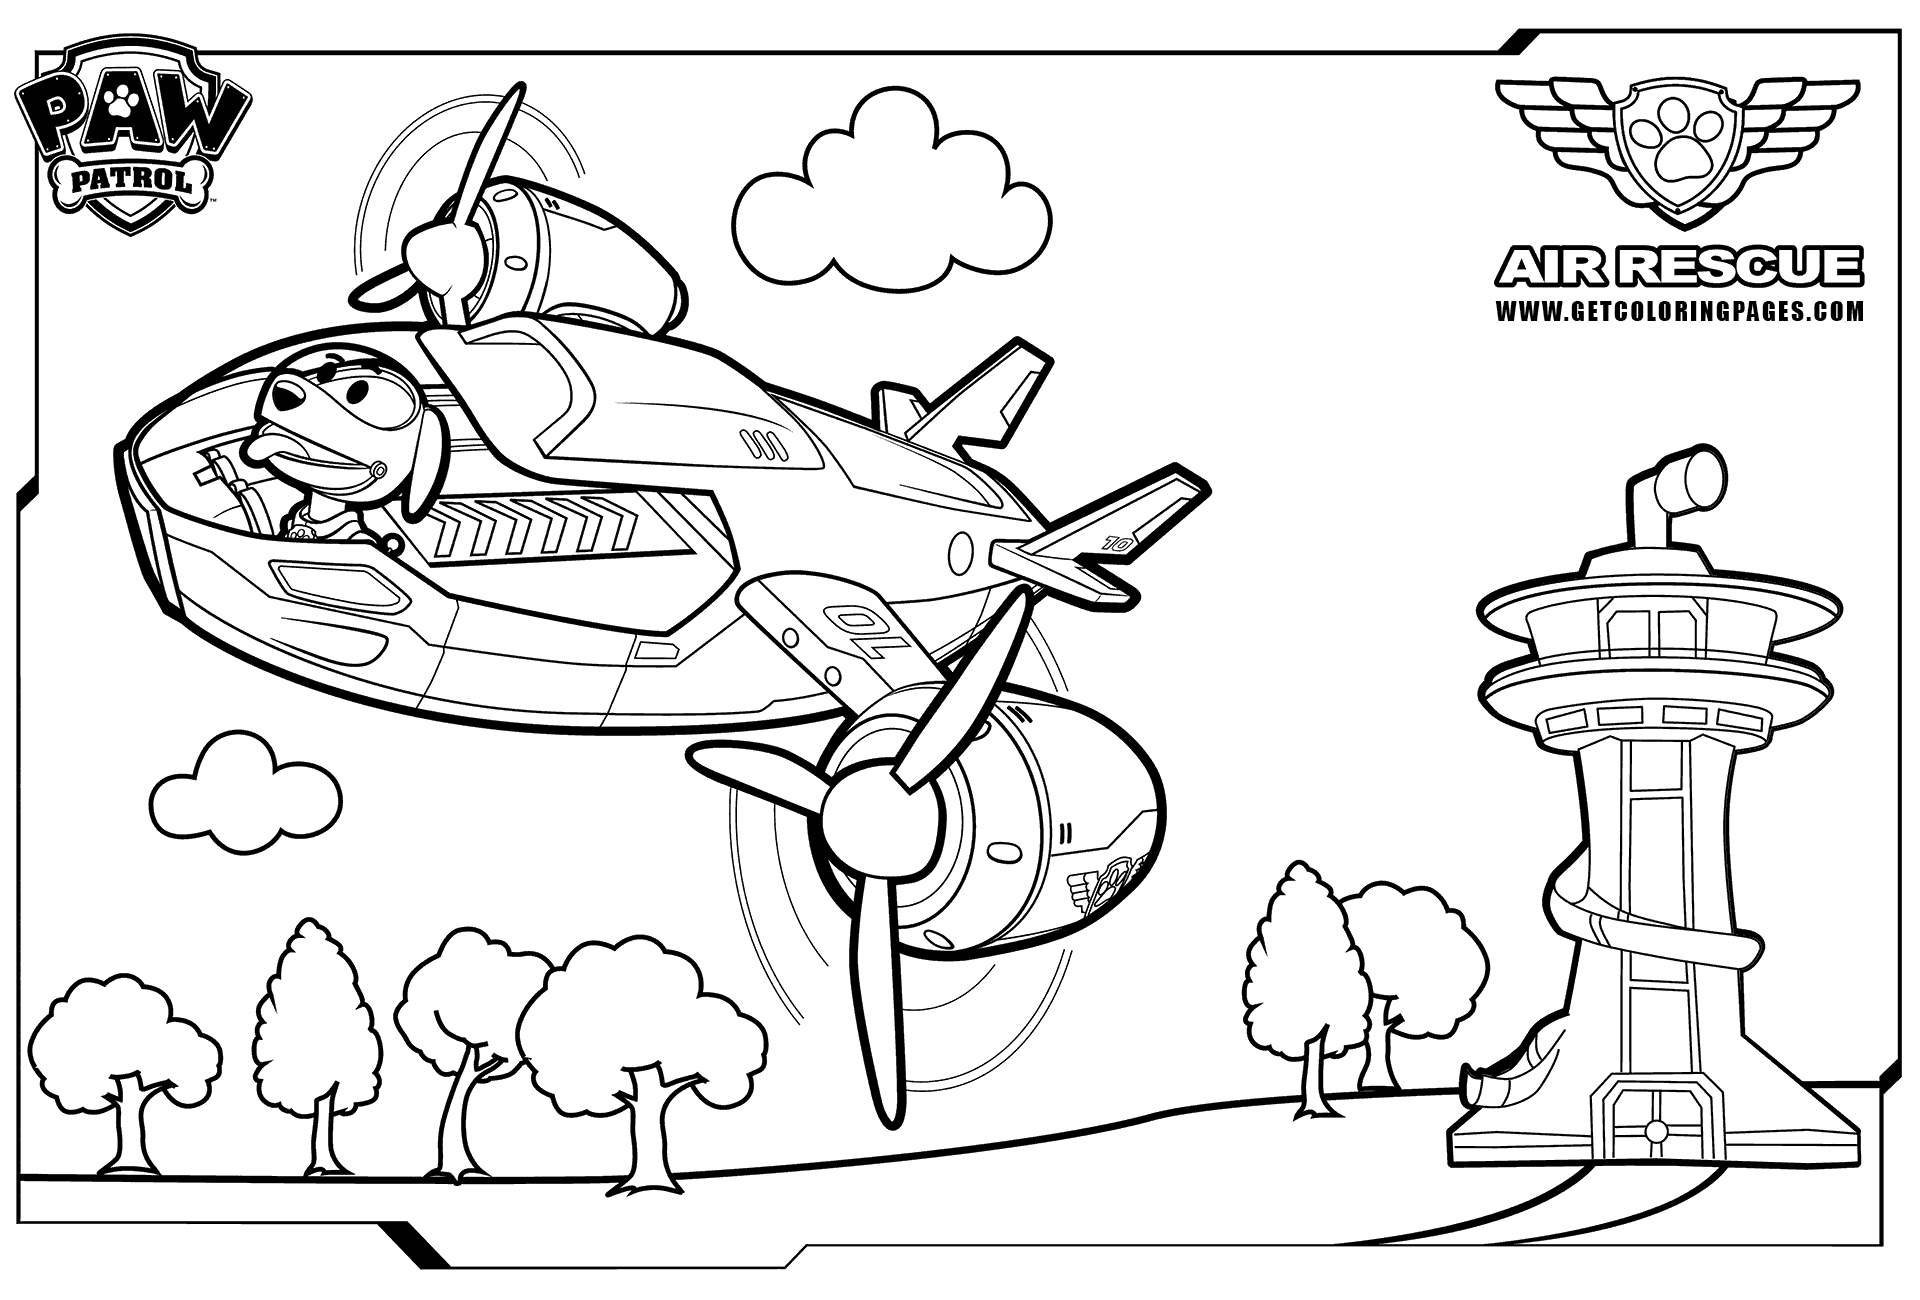 27 Paw Patrol Printable Coloring Pages Selection Free